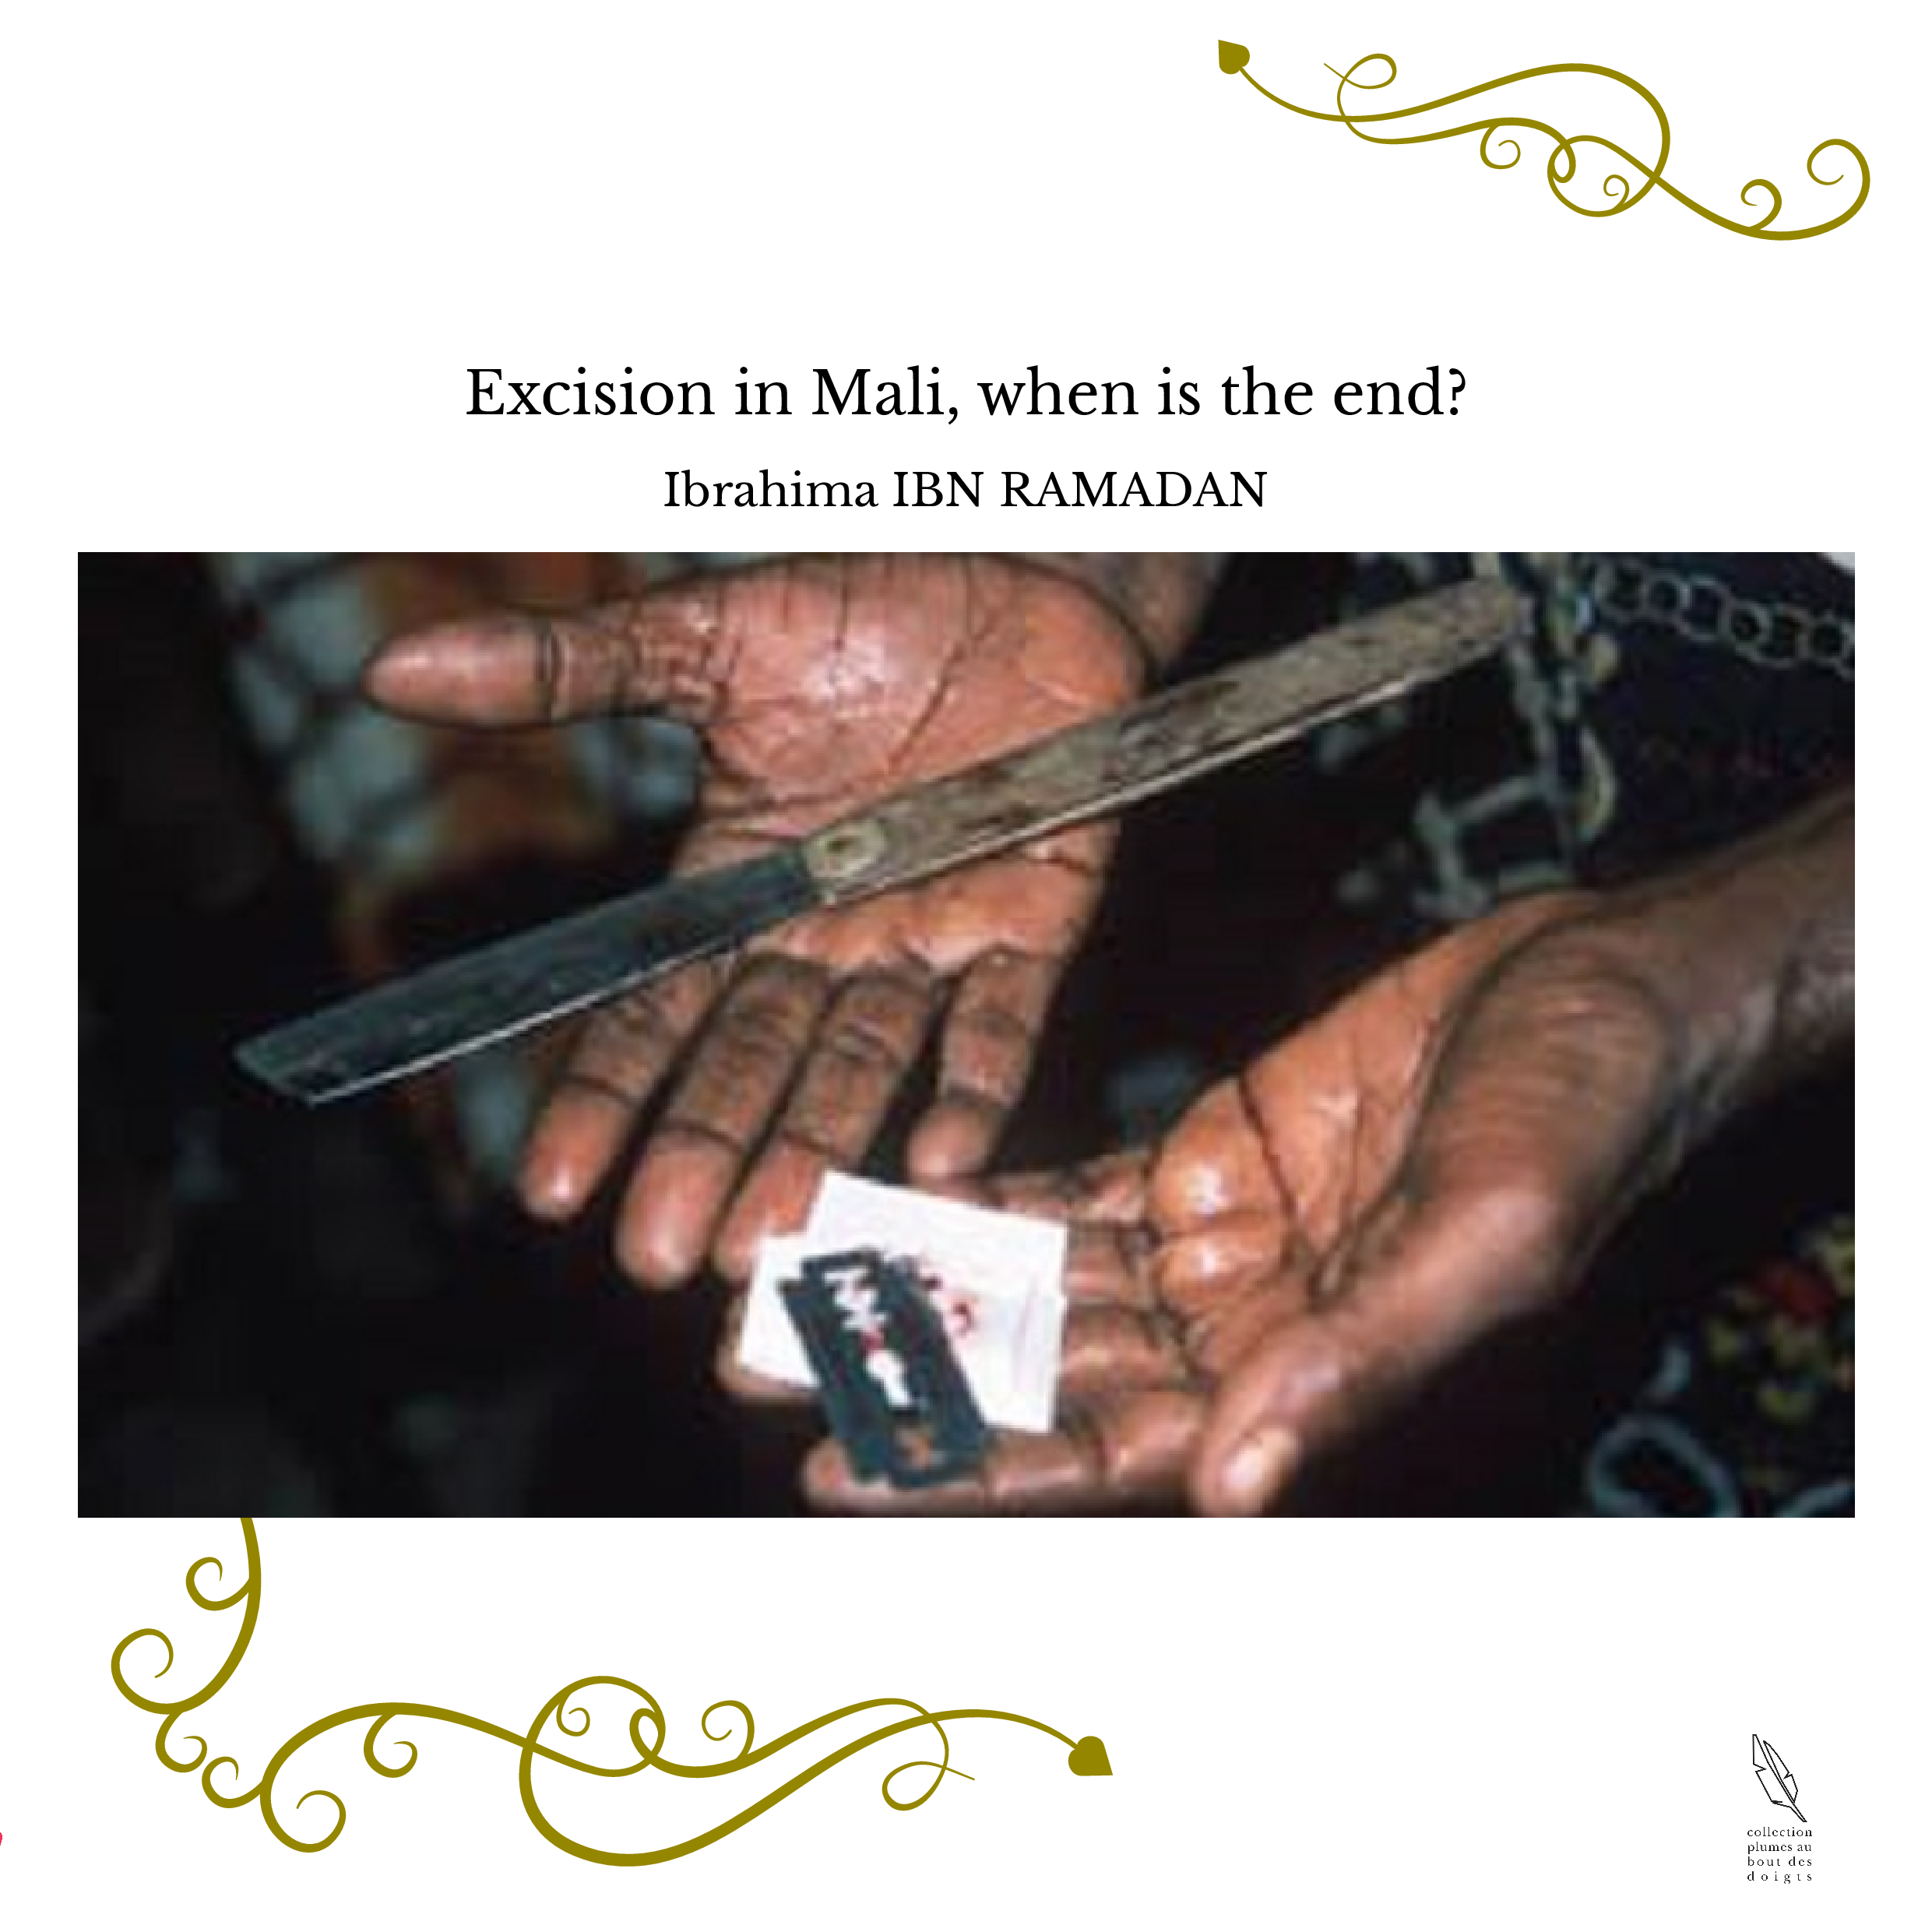 Excision in Mali, when is the end?